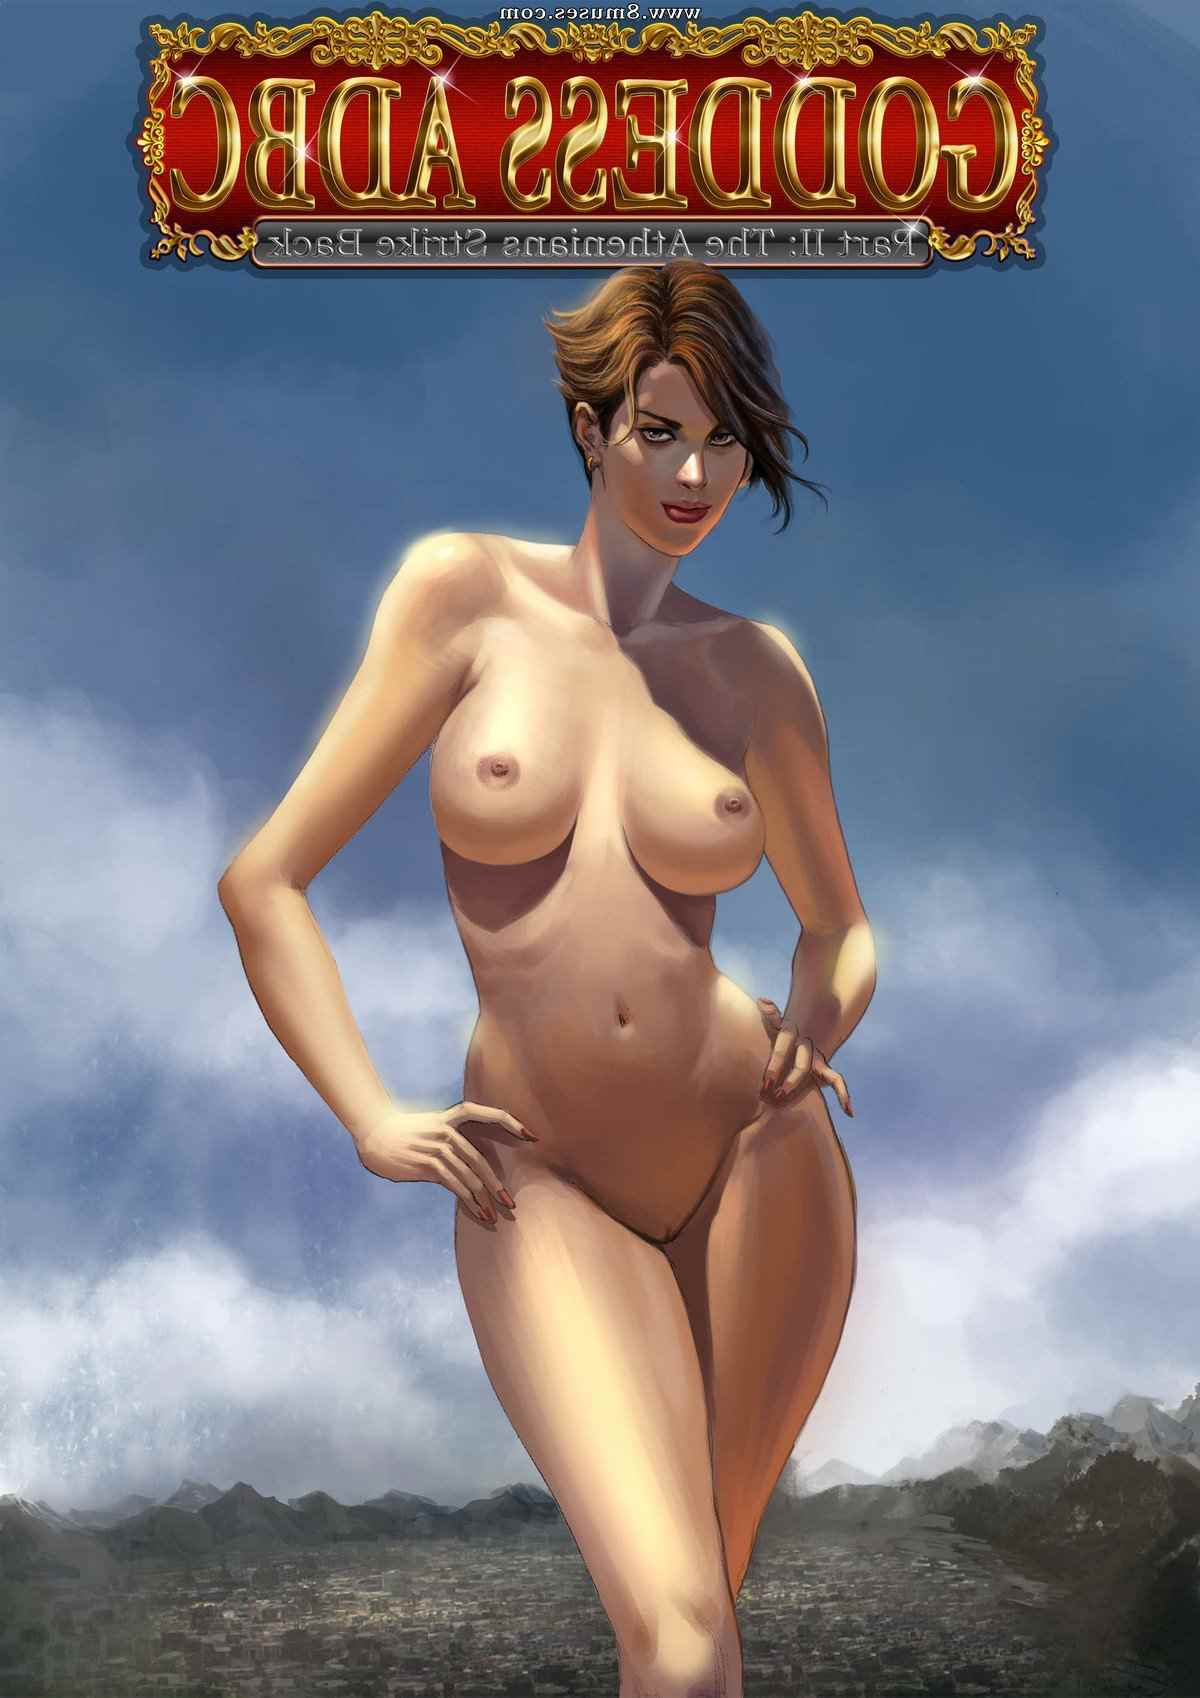 Giantess-Fan-Comics/Goddess-ADBC Goddess_ADBC__8muses_-_Sex_and_Porn_Comics_2.jpg